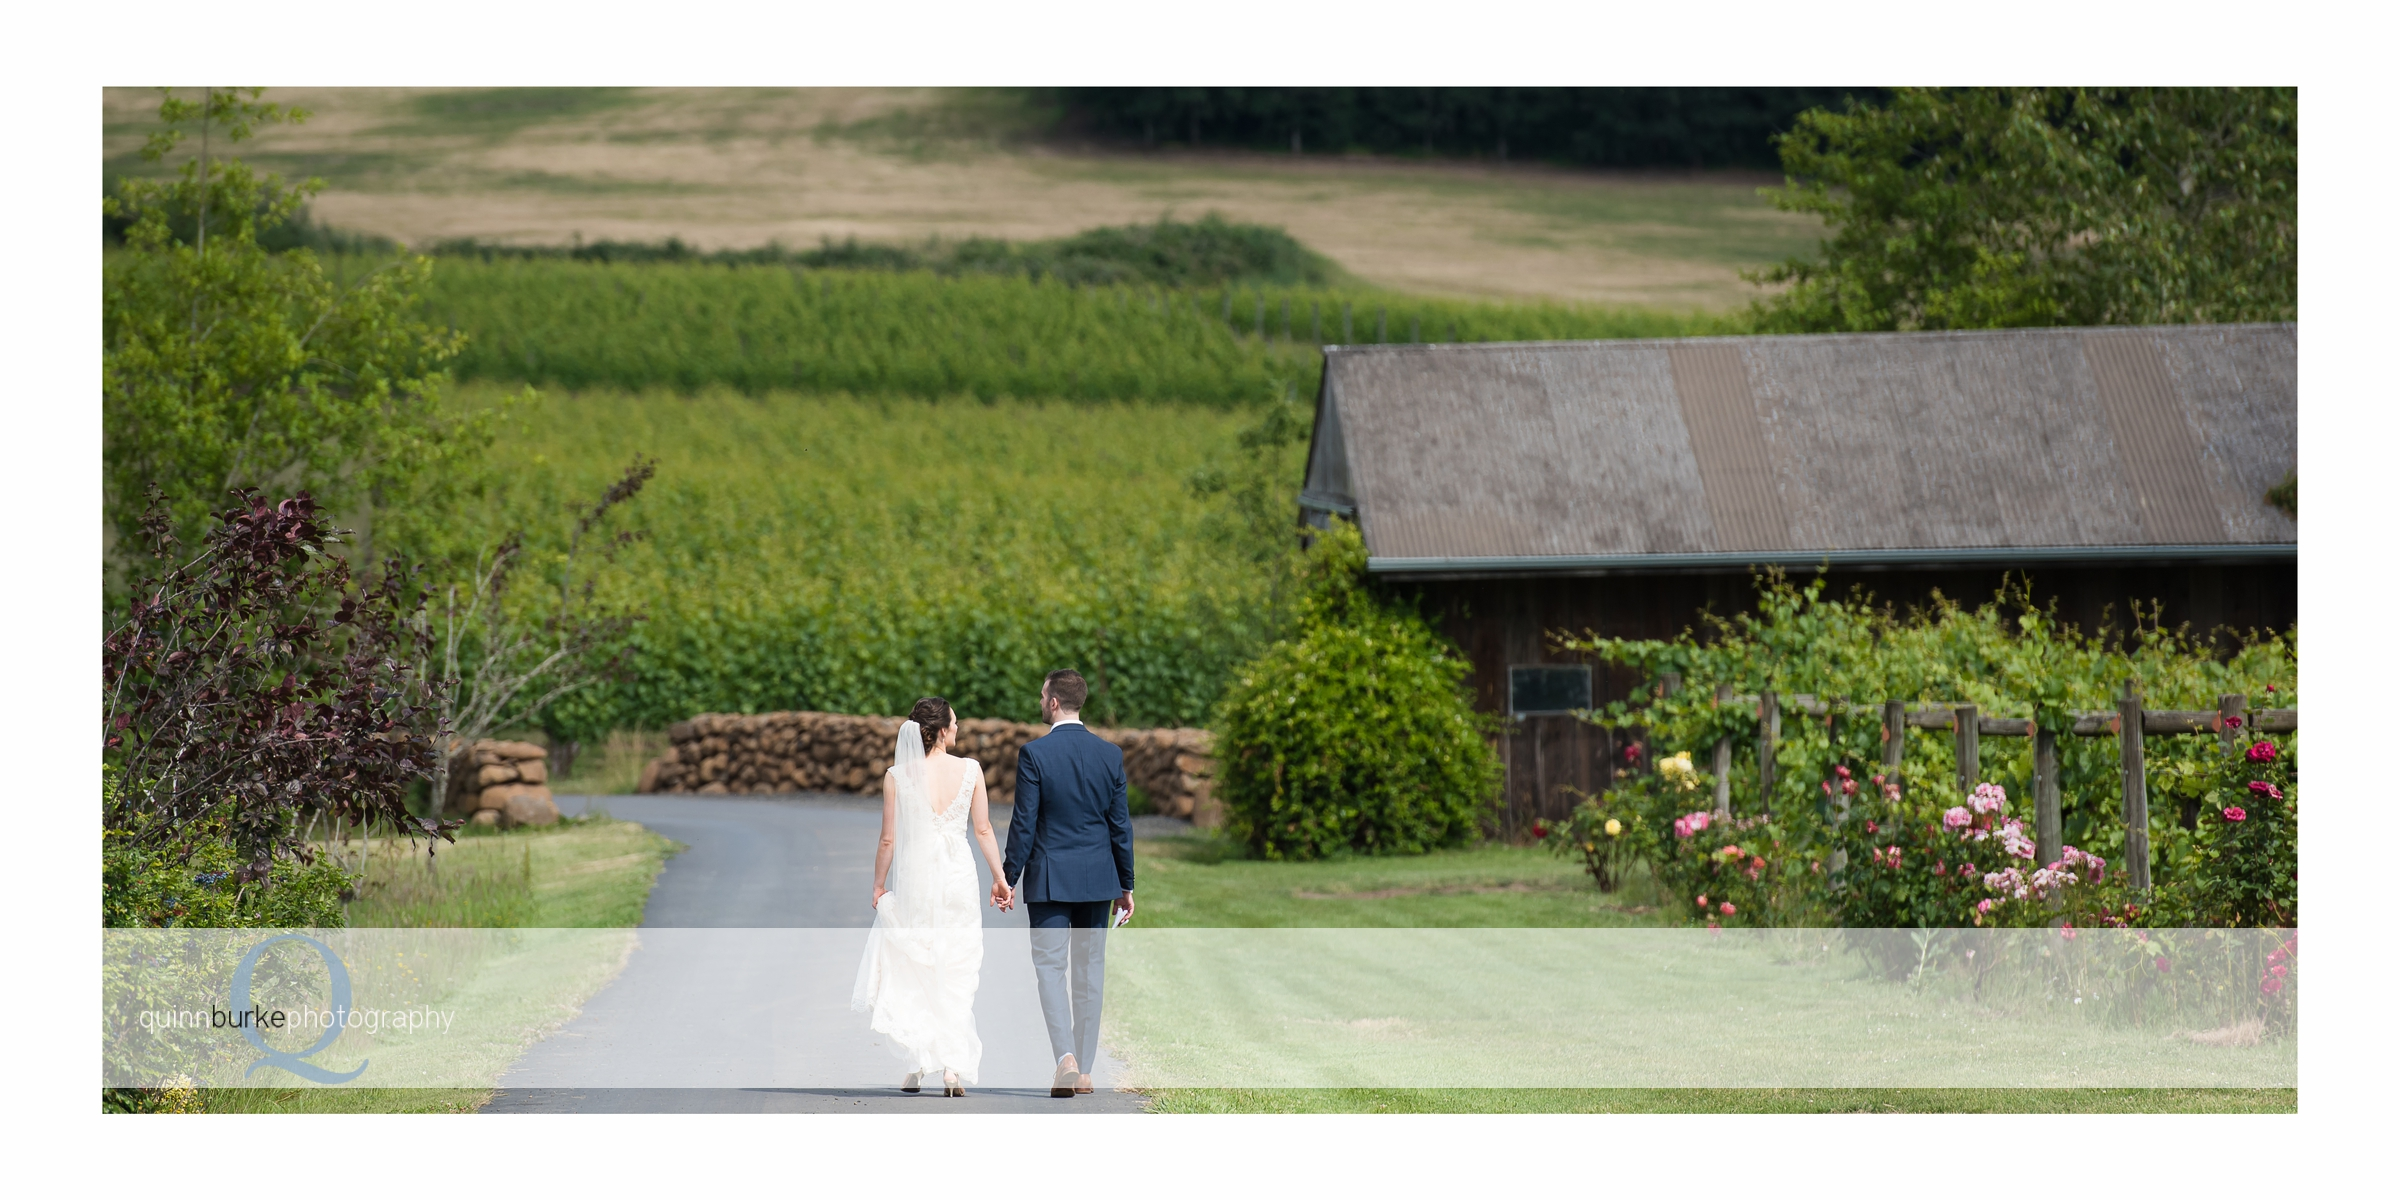 Bride and groom walking in vineyard